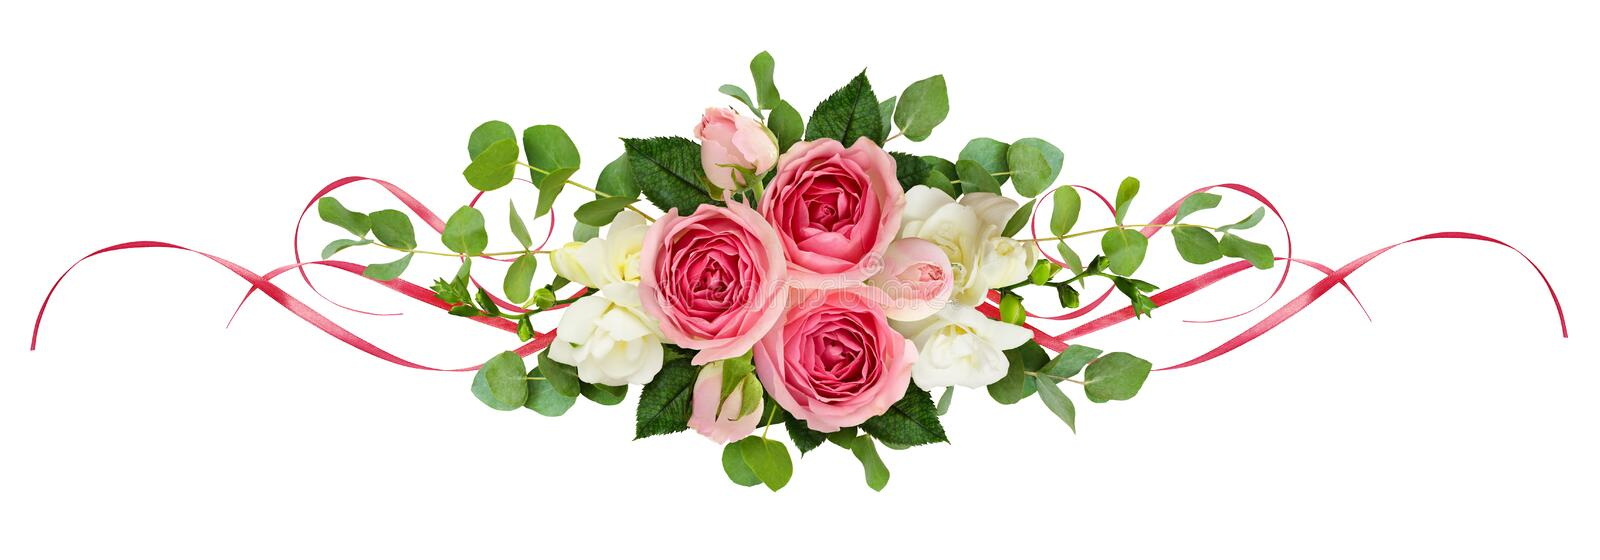 Horizontal arrangement with pink roses, freesia flowers, eucalyptus leaves and sarin ribbons. Isolated on white. Top view. Flat lay vector illustration